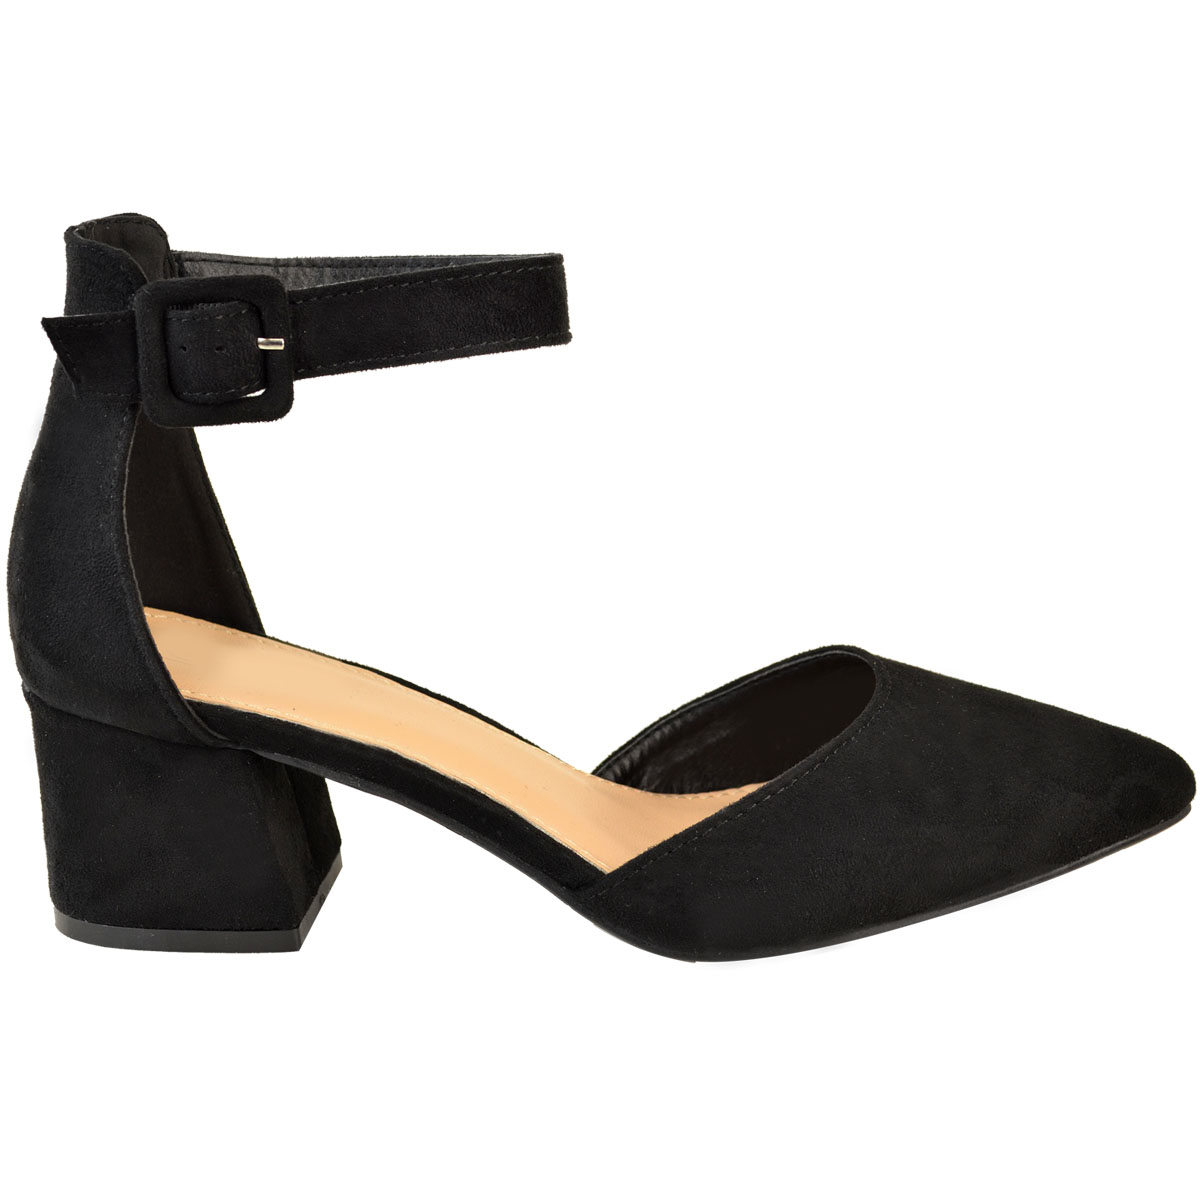 Womens Black Low Heel Shoes